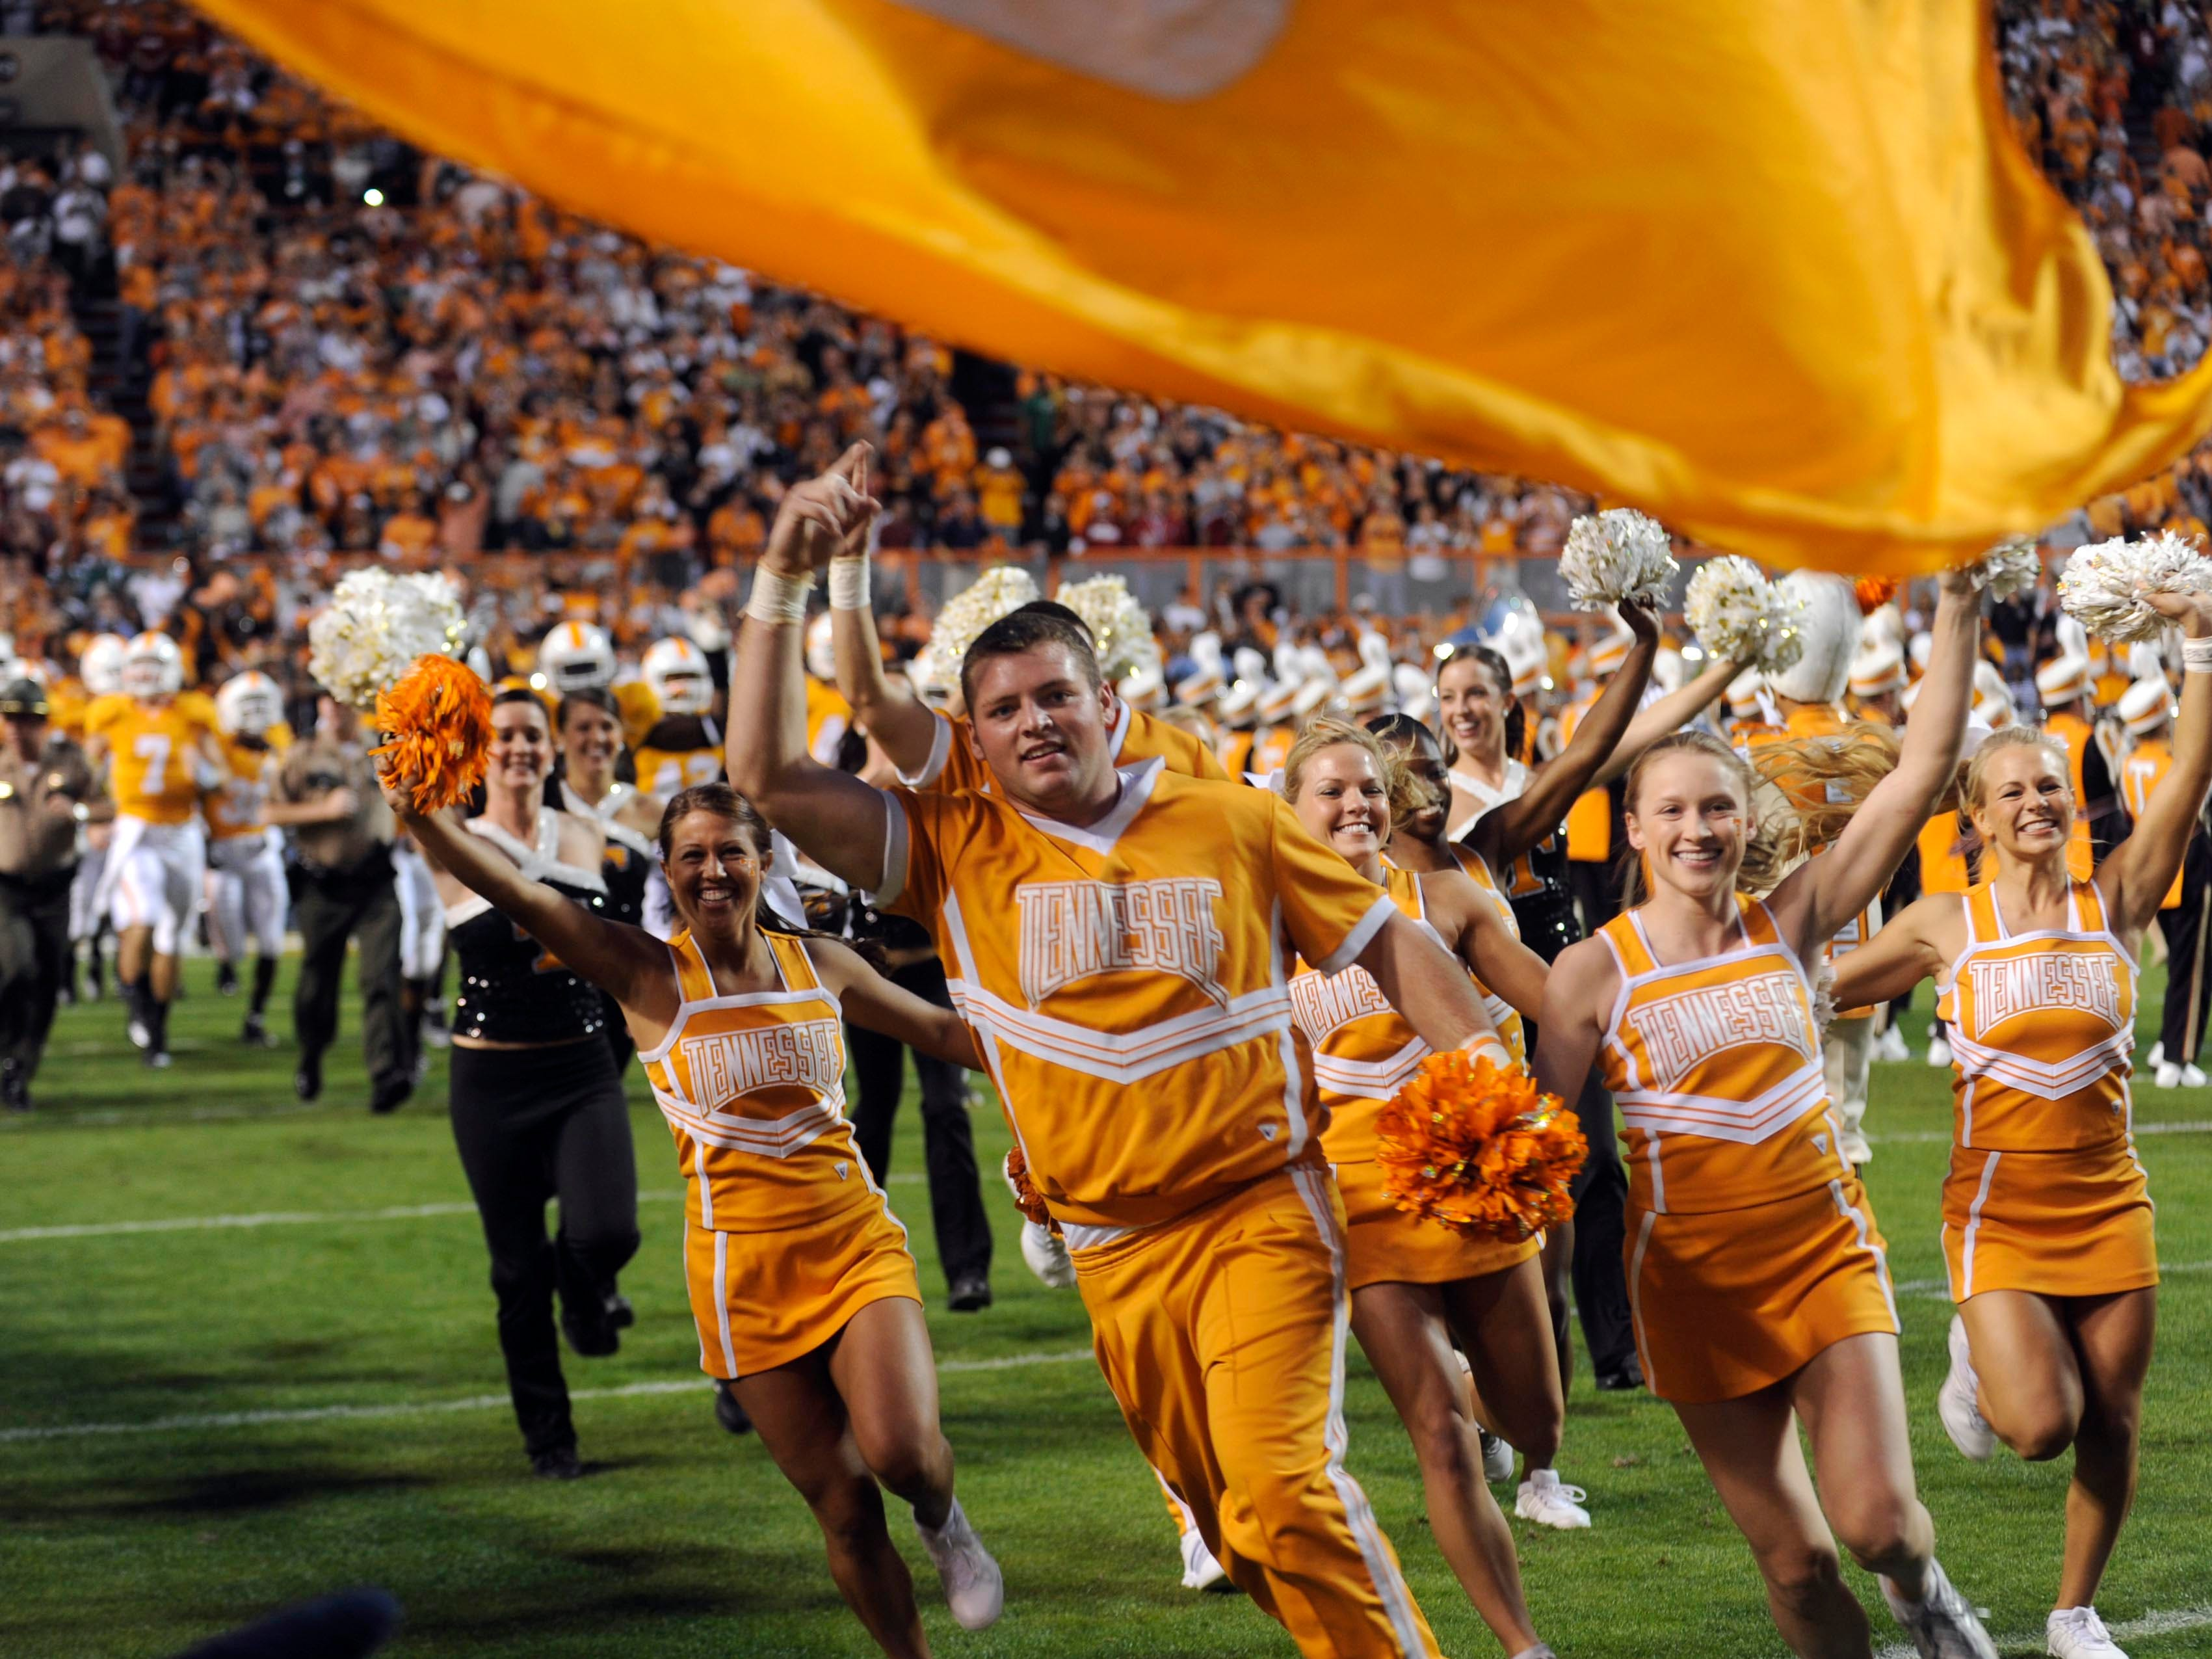 Tennessee cheerleaders lead the team onto the field before the game  against Alabama Saturday, Oct. 23, 2010 in Neyland Stadium in Knoxville.